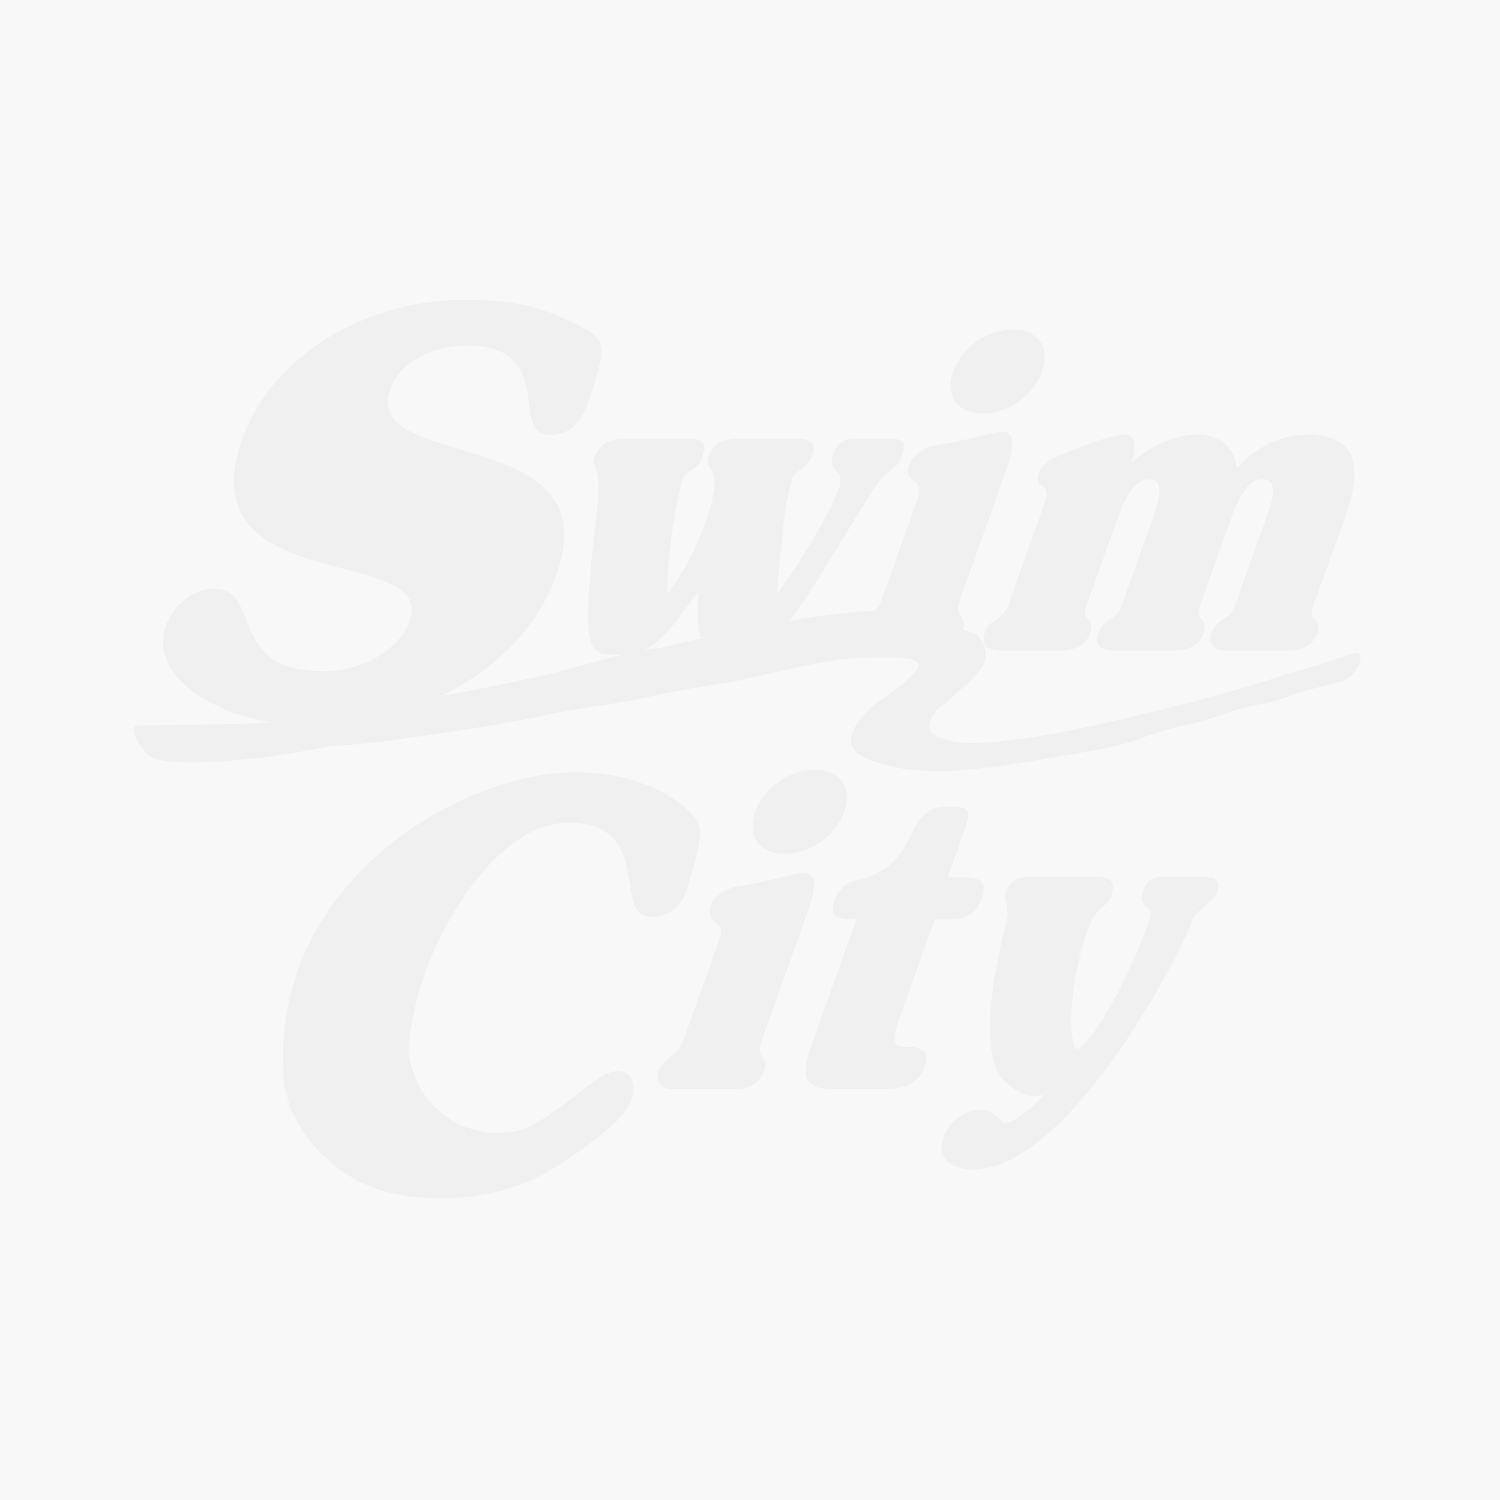 BEACH HOUSE SPORT:STRAIGHT AND ARROW TWO PIECE CONVERTIBLE TANKINI